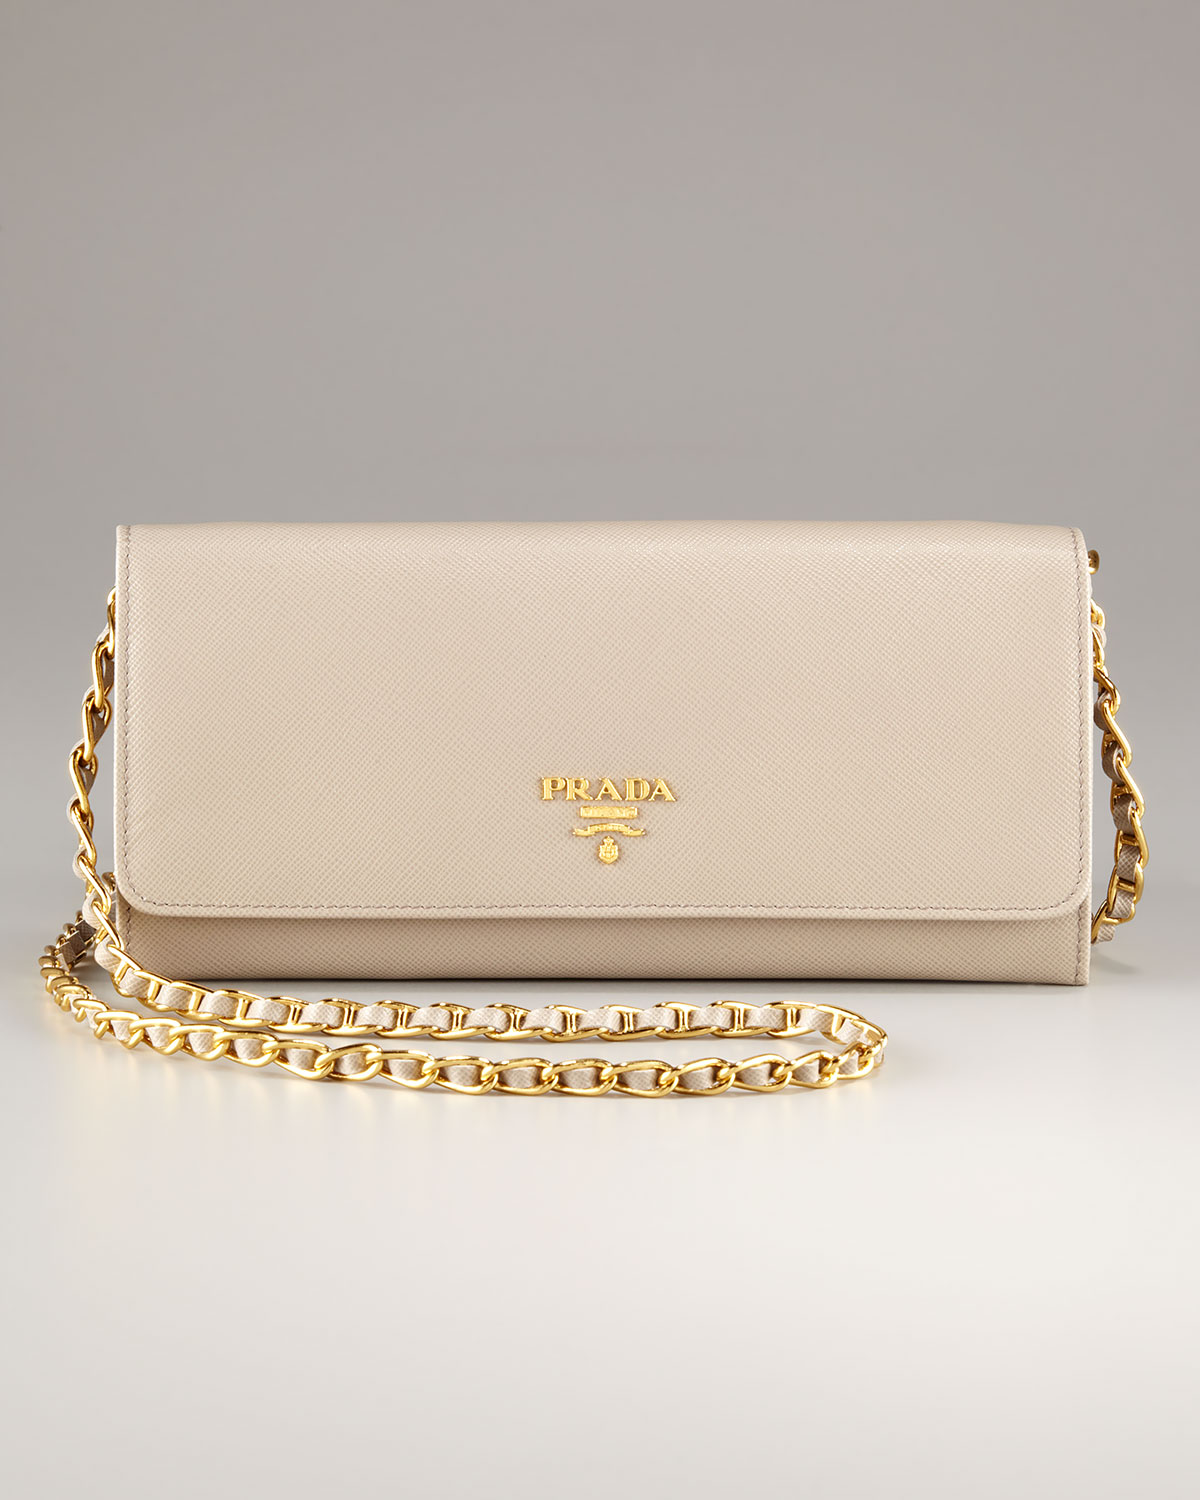 79a0c9a866d3 ... sale lyst prada chain wallet in natural 049c0 aaa82